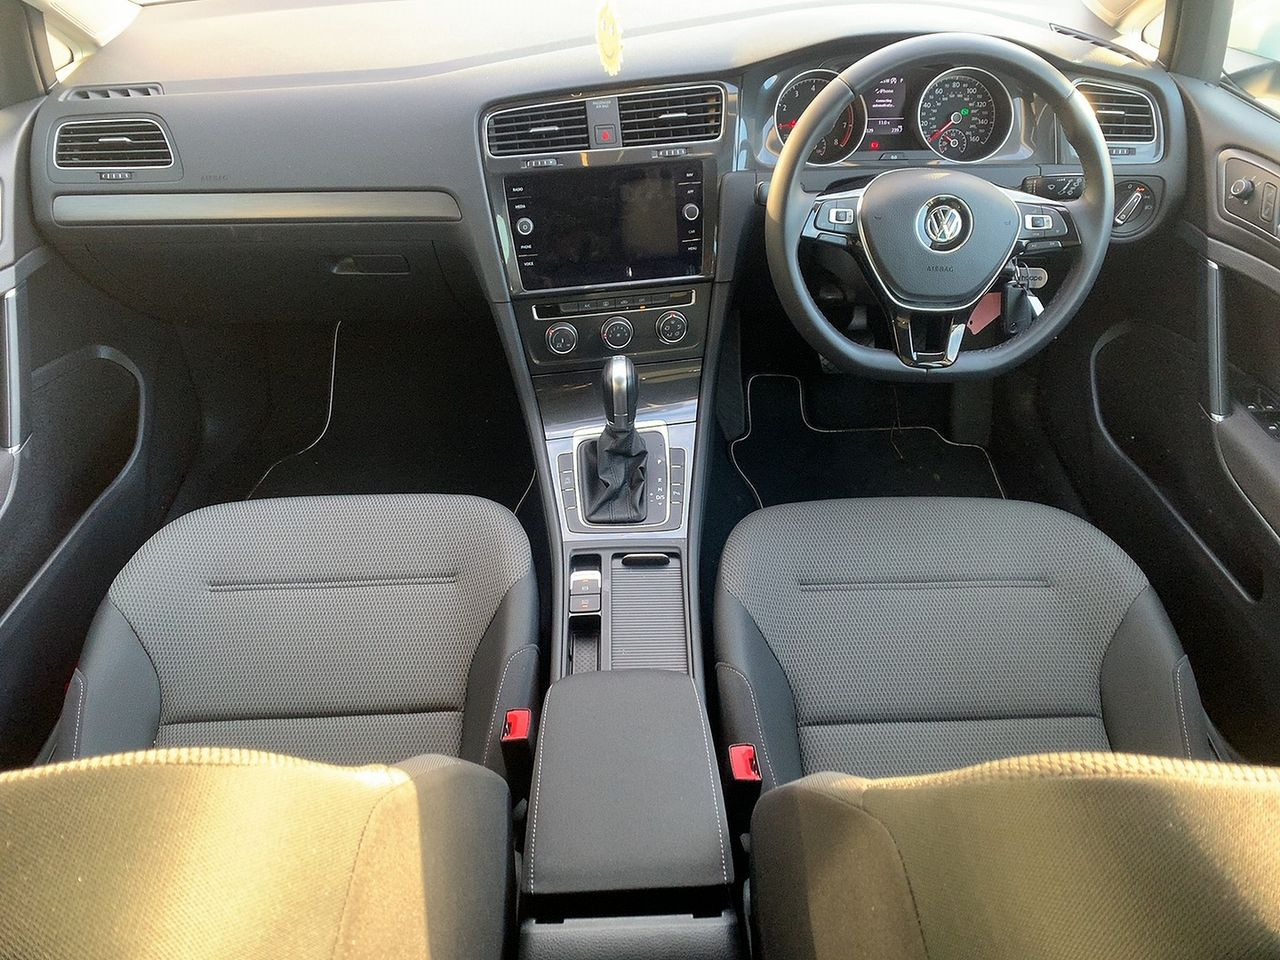 2019 VOLKSWAGEN Golf Match TSI 1.0 110 PS DSG - Picture 9 of 10